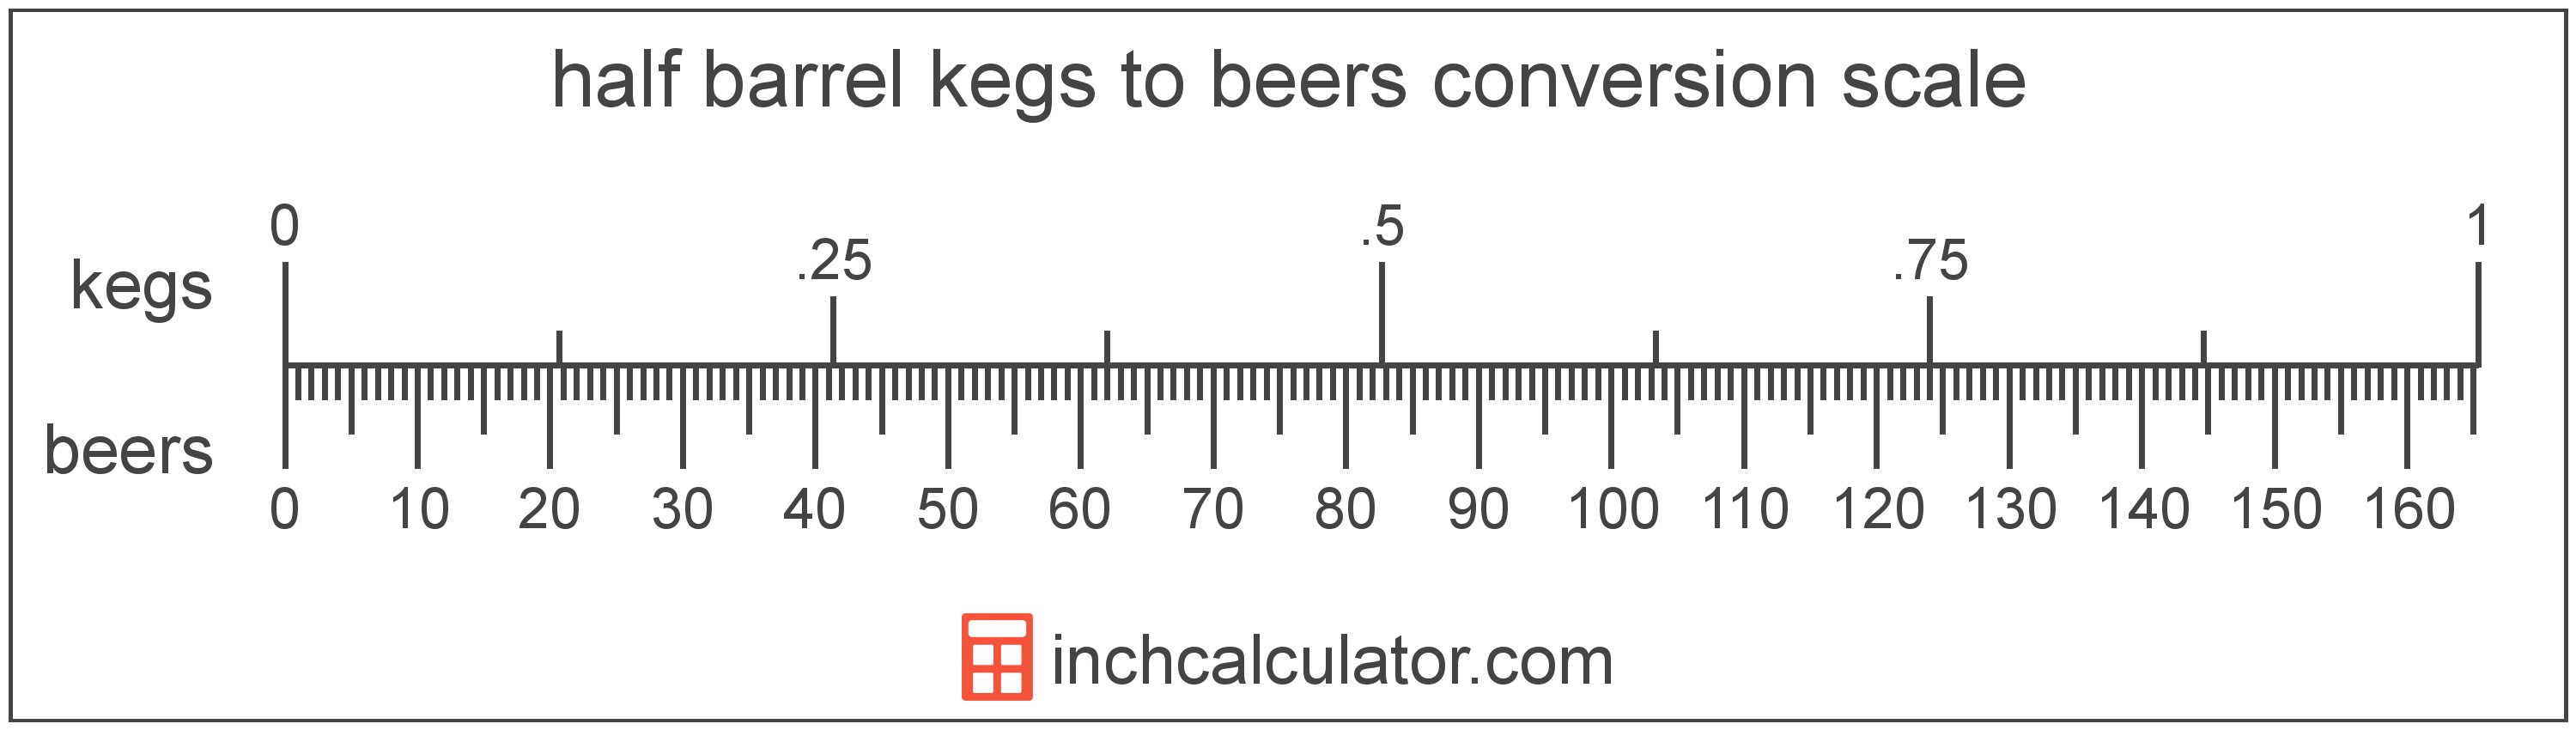 conversion scale showing half barrel kegs and equivalent beers beer volume values